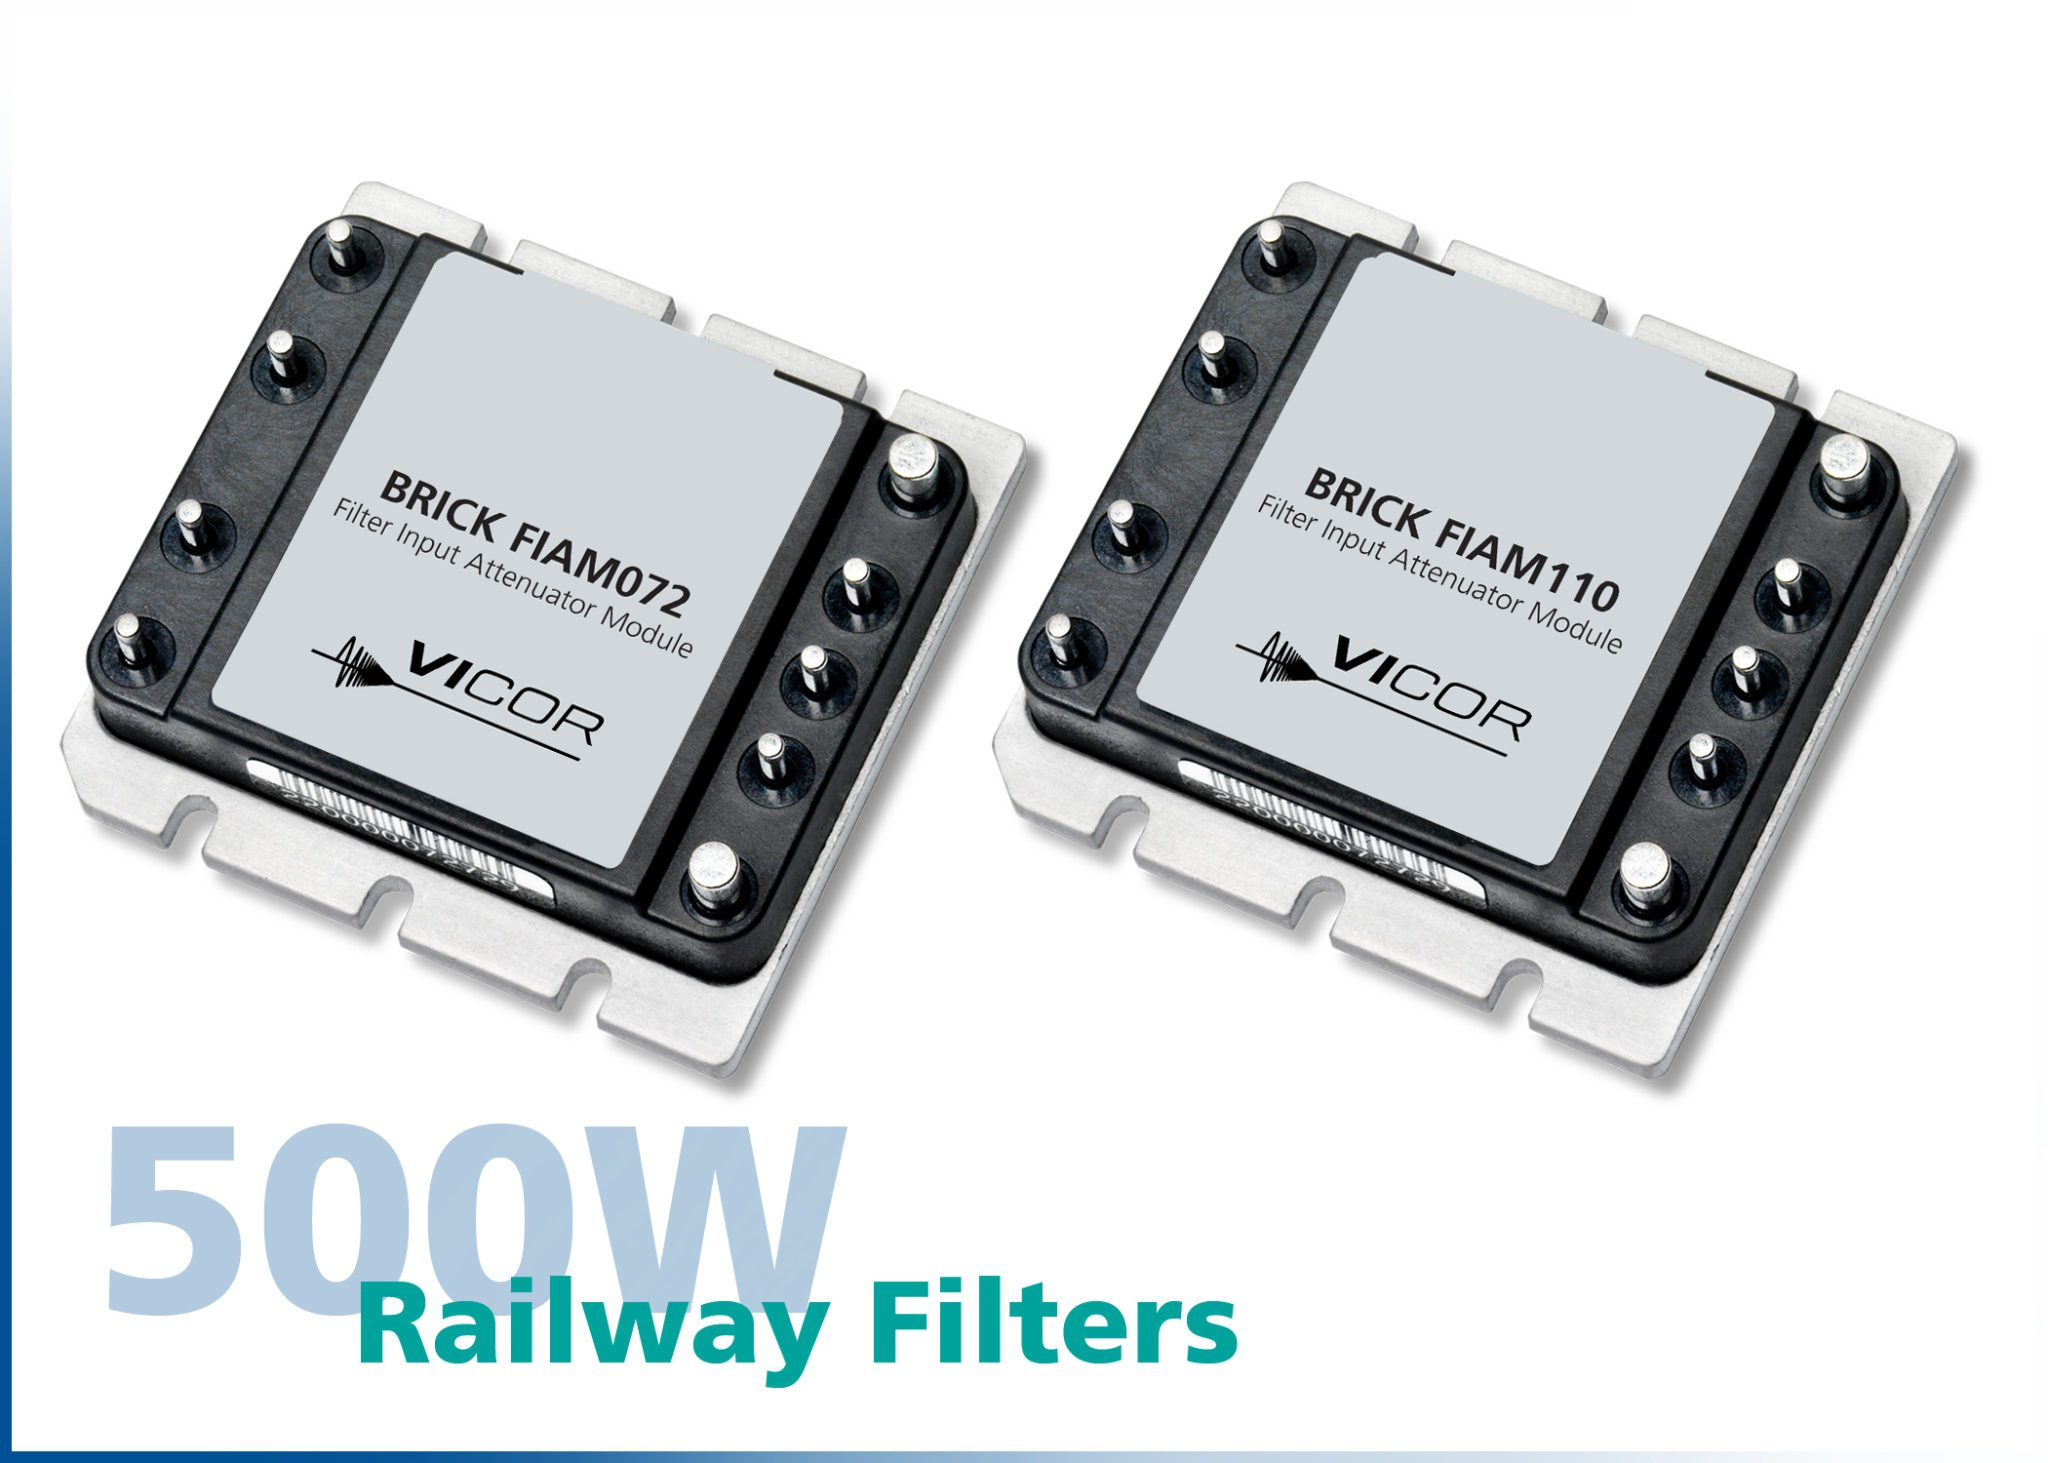 Vicor introduces new FIAM Filter Modules for DC-DC railway